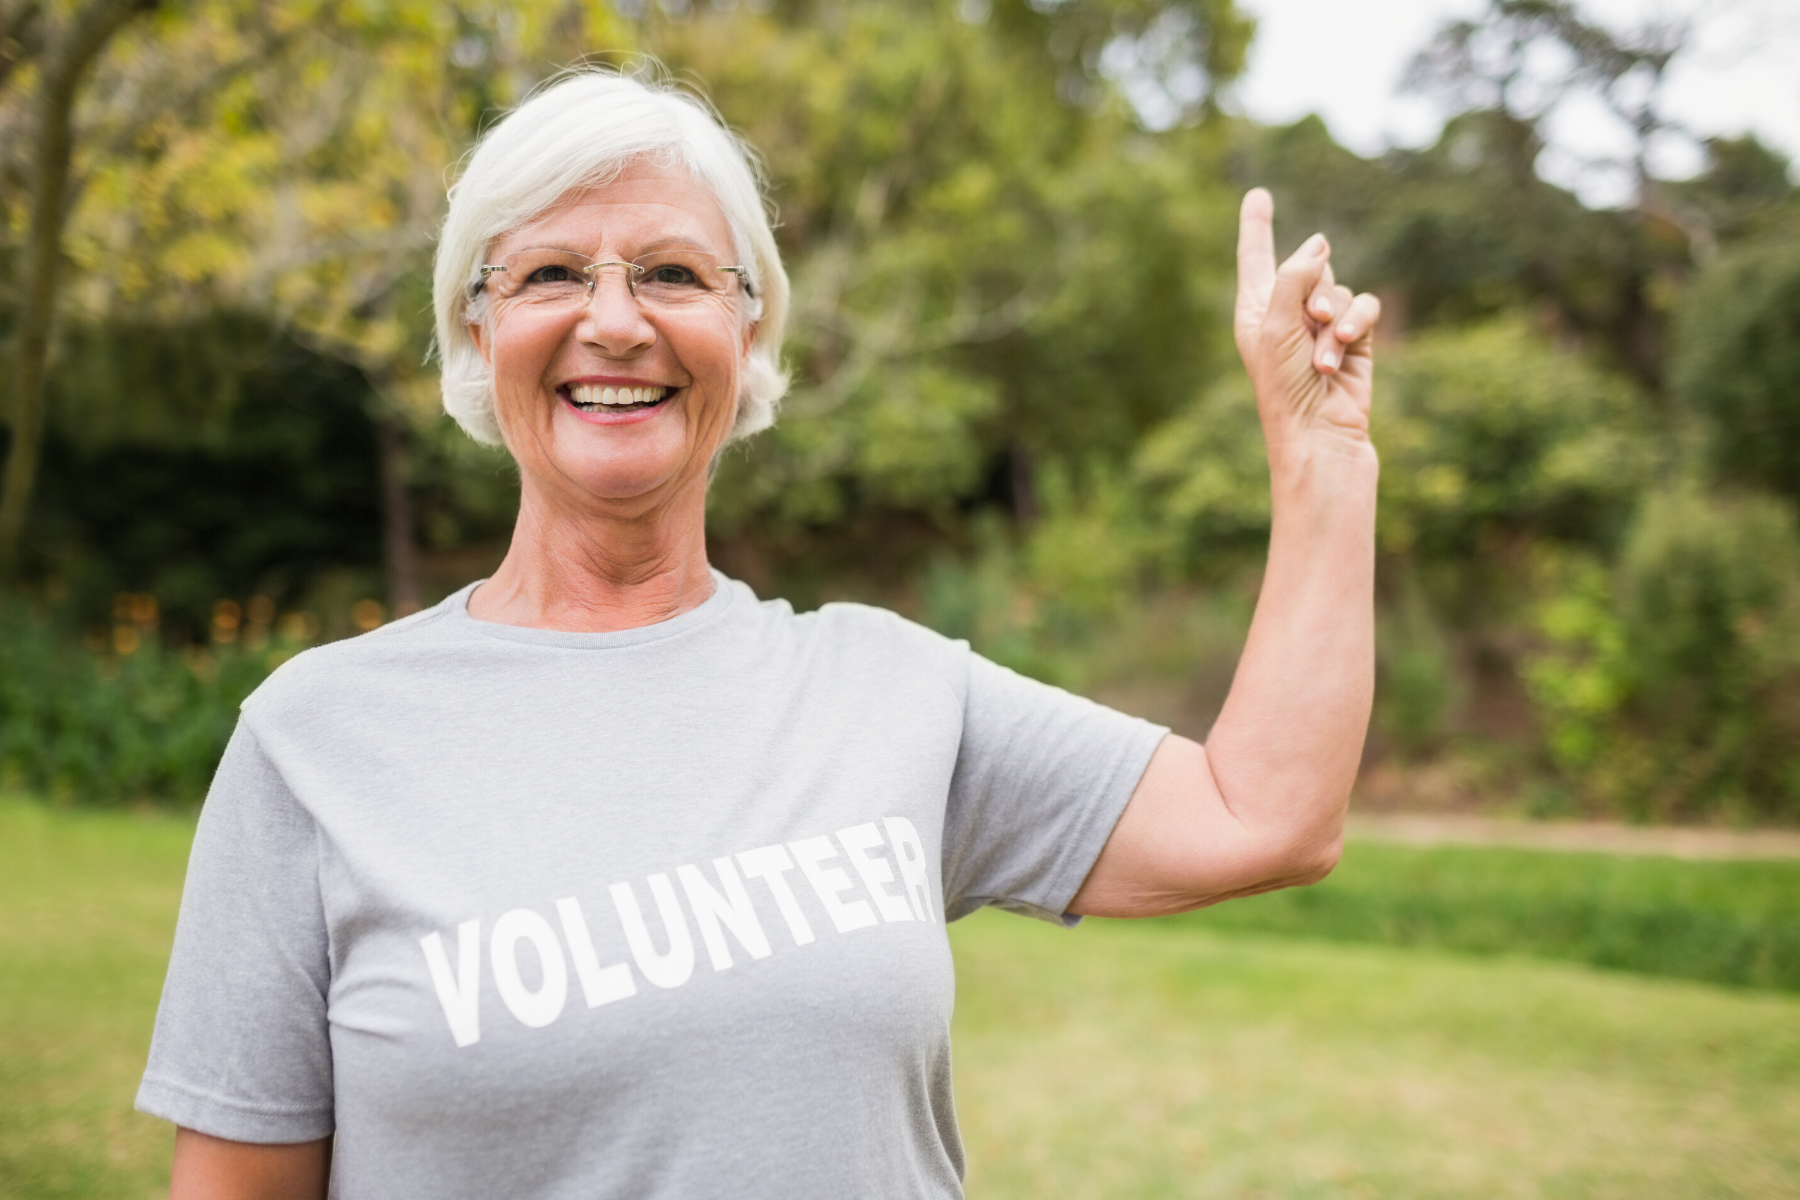 5 reasons to volunteer in later life